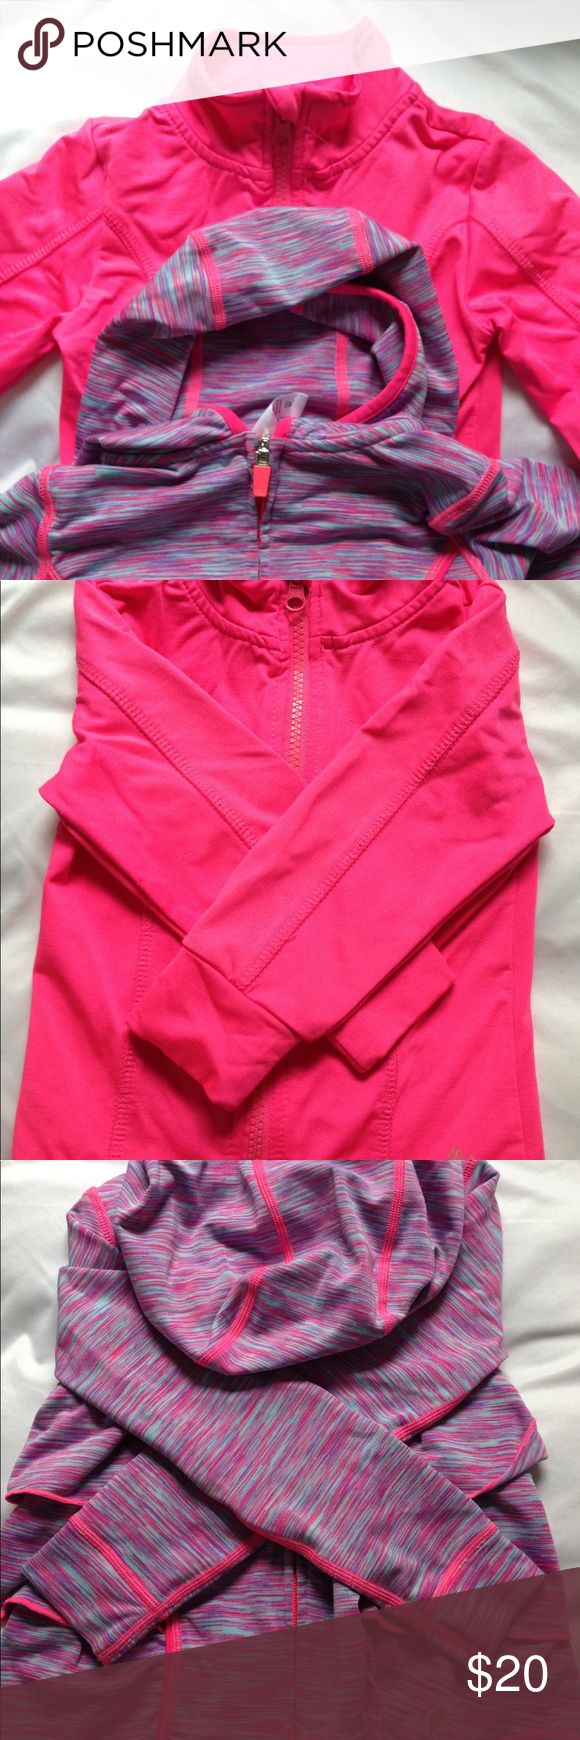 2 Jackets + 3 Leggings Neon pink jacket has some pilling but no spills. I will add 3 leggings (last picture. Barnds: Gymboree, Macy's, 90 Degree by Reflex) to go with them! Purple jacket is 3T. Pants are all 2T/24 months. 90 Degree By Reflex Jackets & Coats